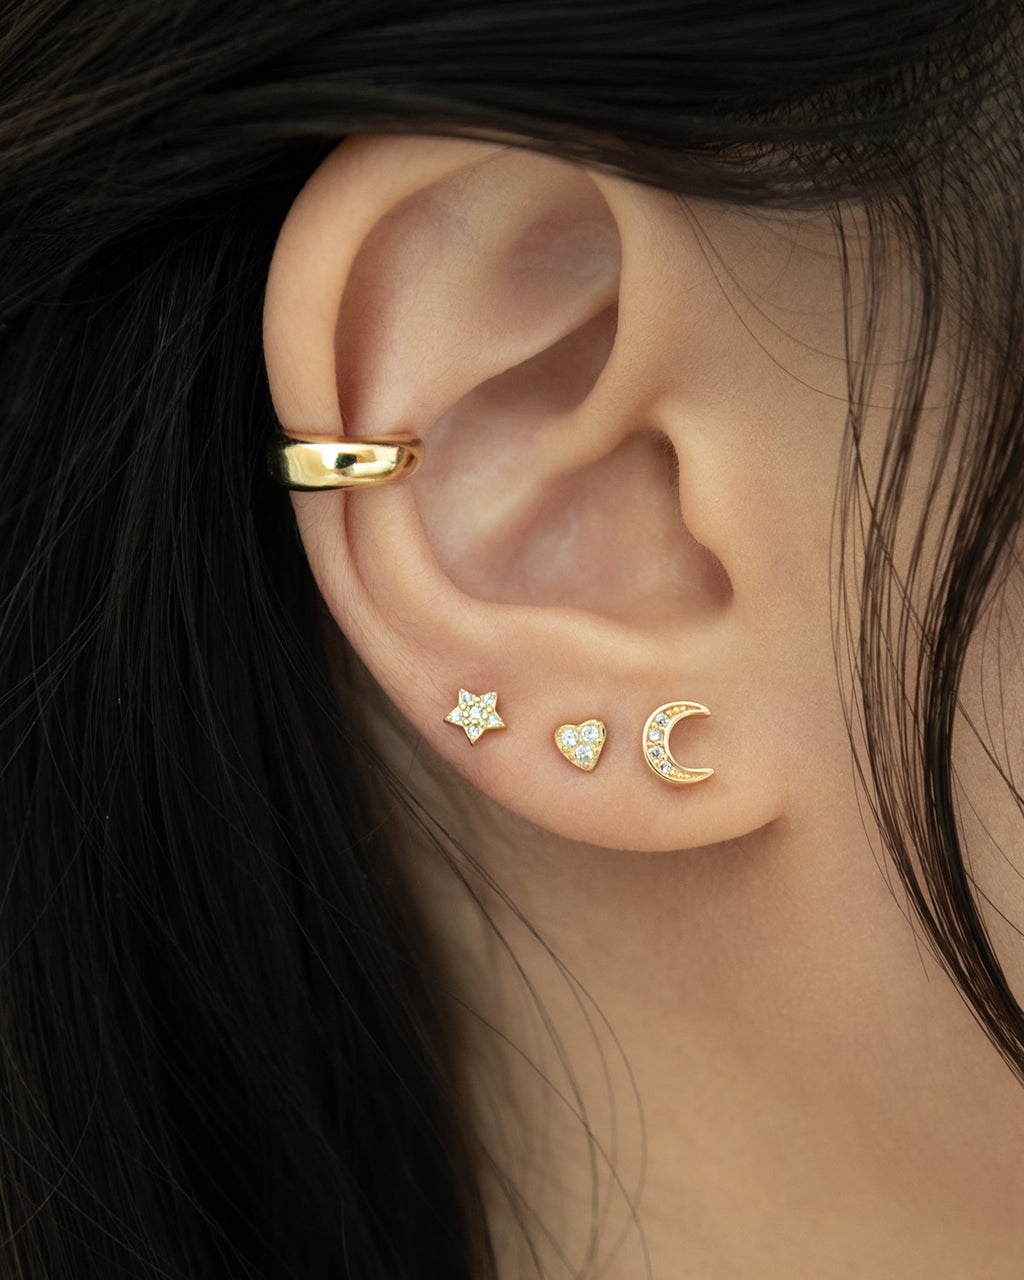 moon star and heart stud earrings in gold @thehexad